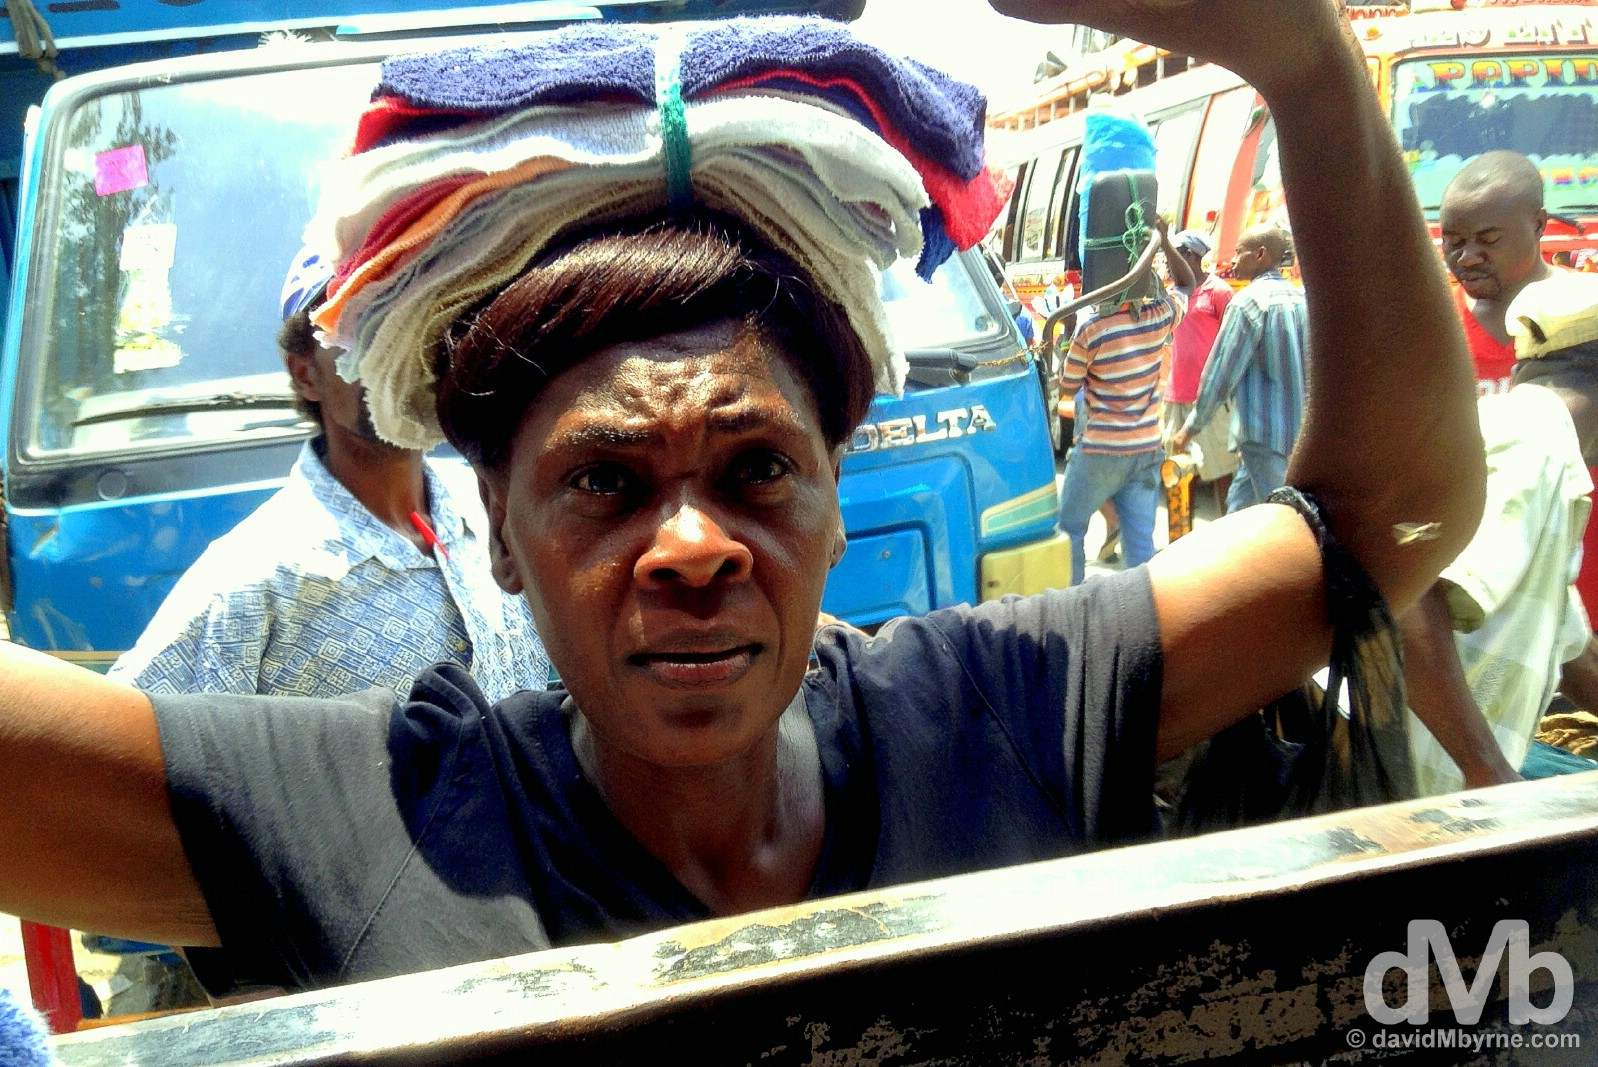 A vendor peddling her wares to bus passengers in Port-au-Prince, Haiti. May 19, 2015.